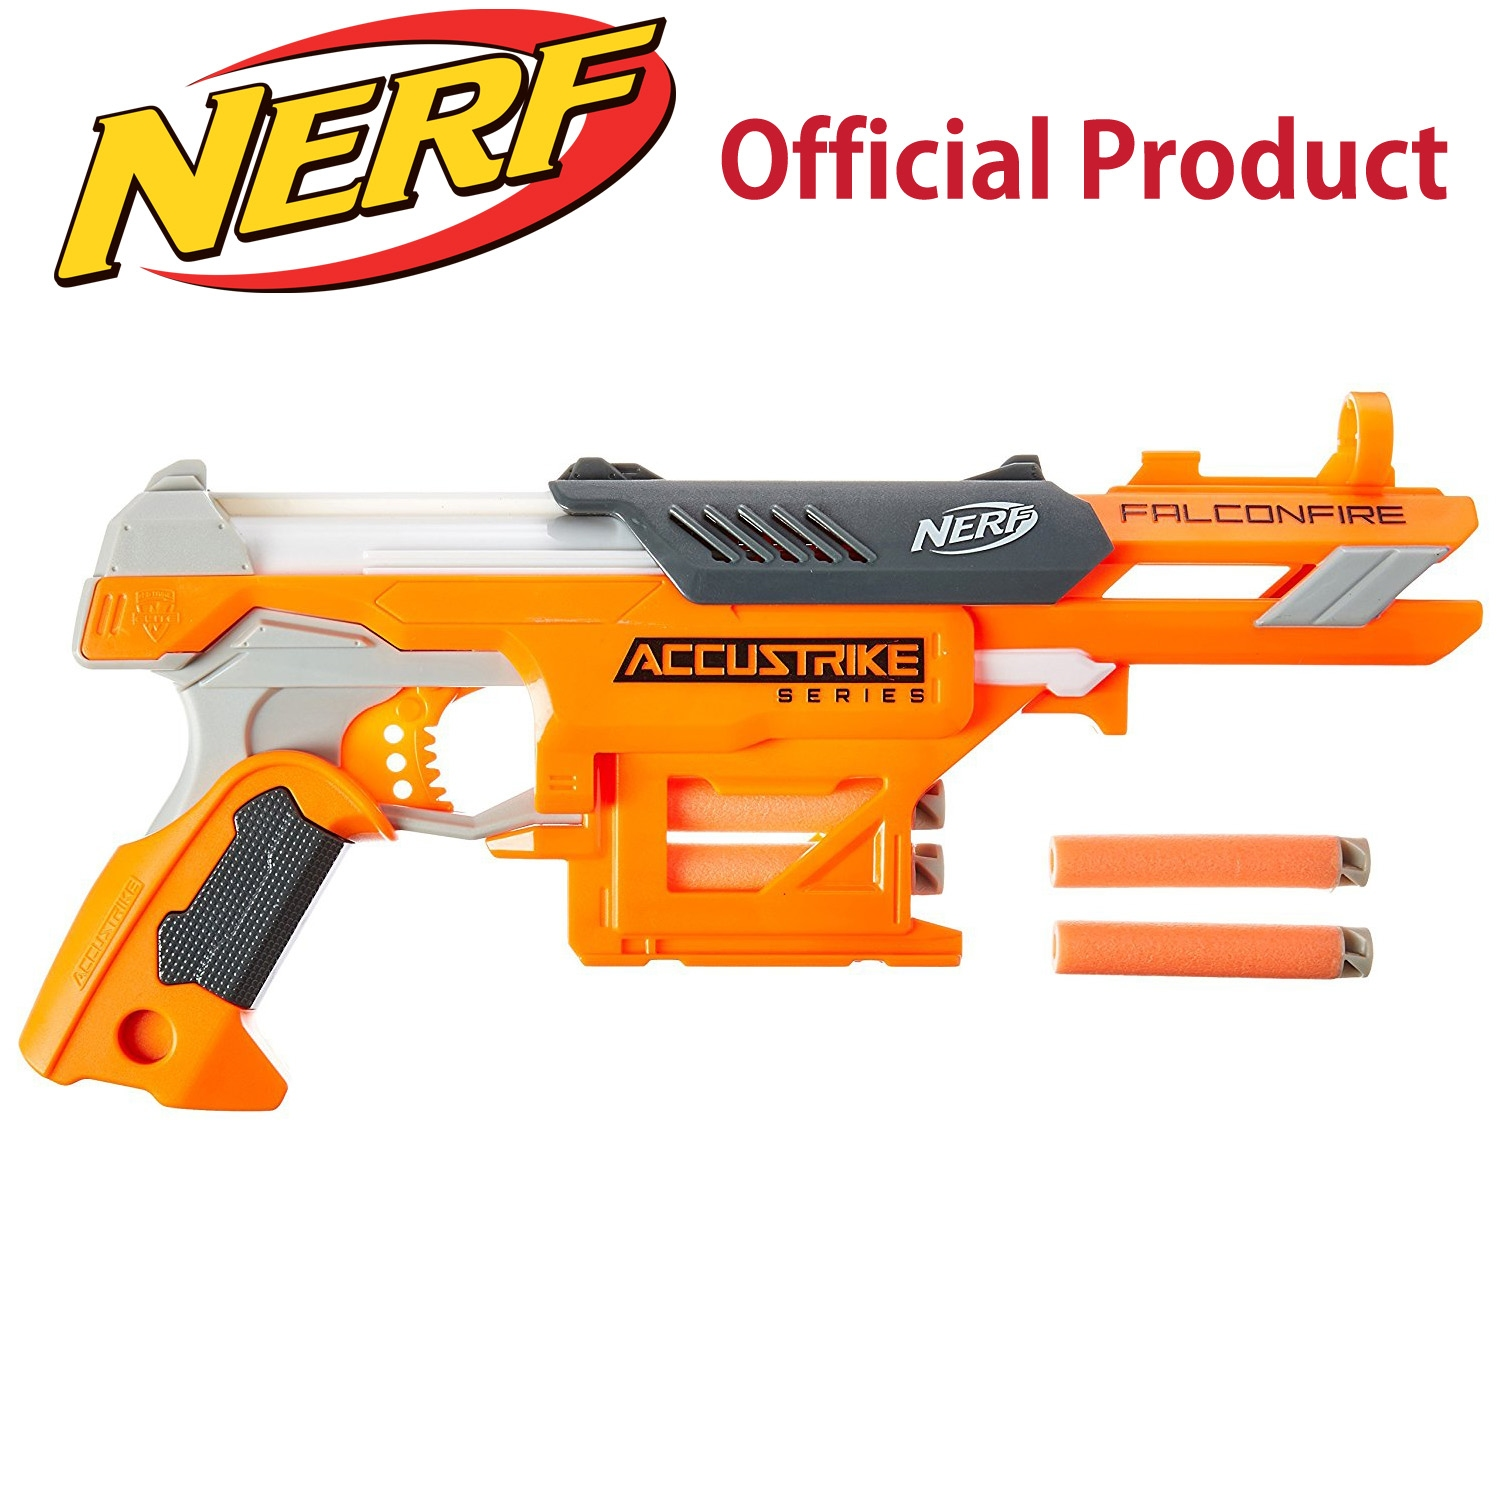 Nerf N Strike Elite AccuStrike Series FalconFire B9840